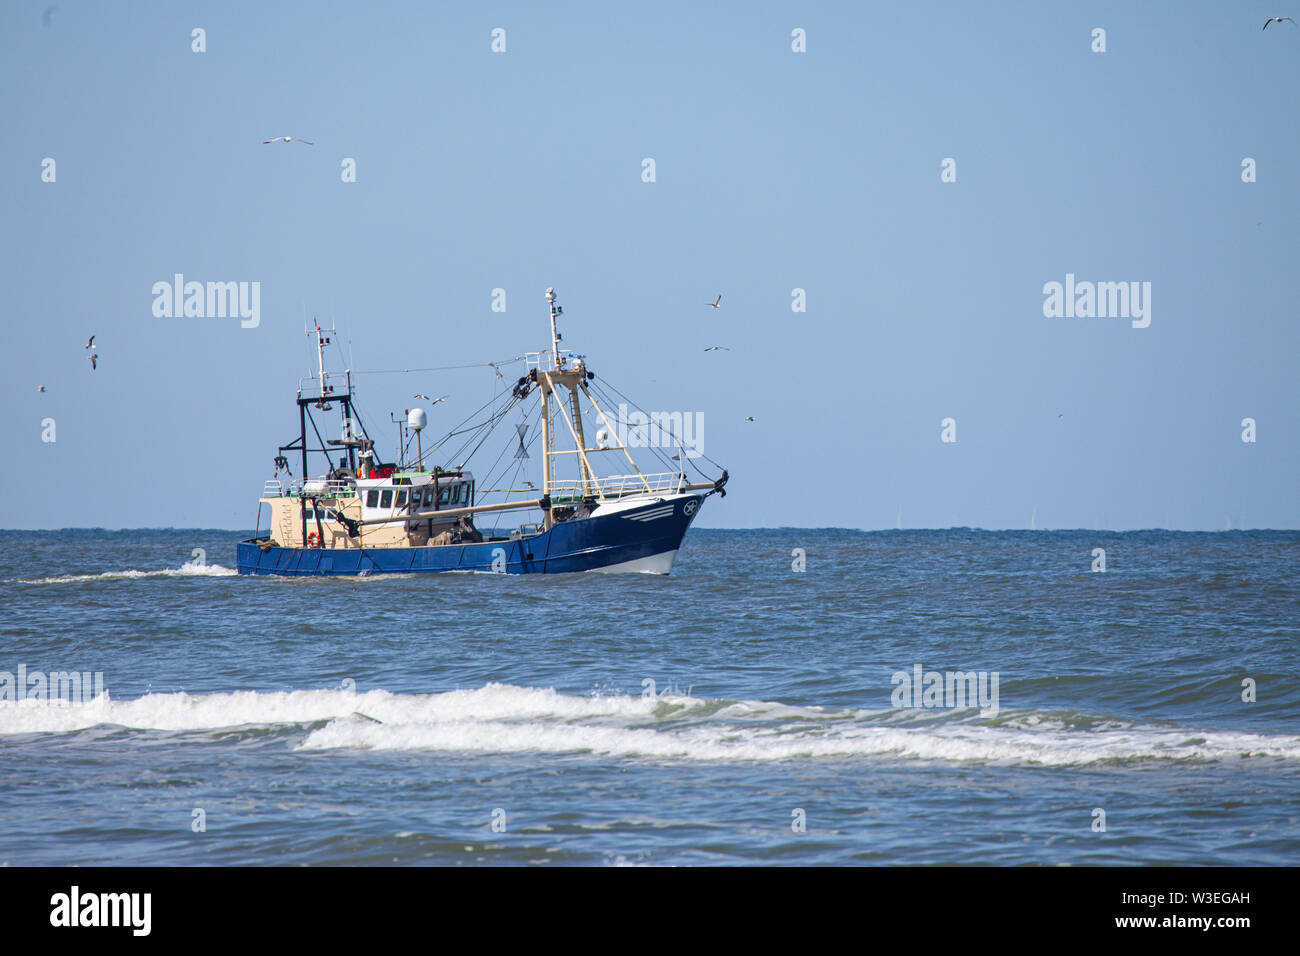 a shrimp cutter on the north sea - Stock Image